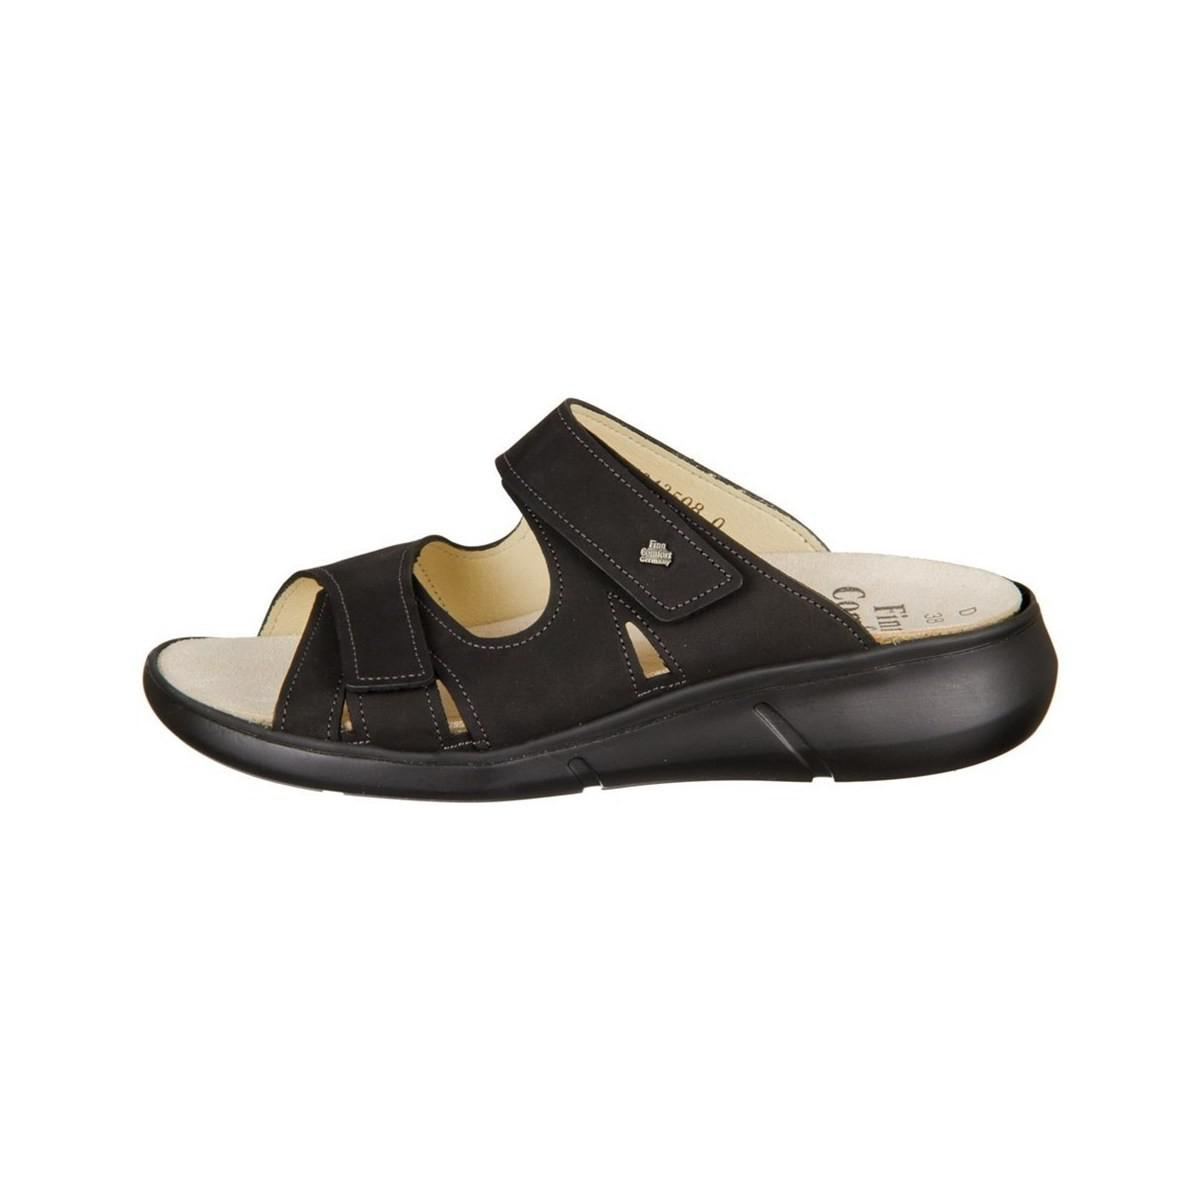 Finn Palau Buggy women's Mules / Casual Shoes in Manchester For Sale Outlet The Cheapest FBJa3qj4